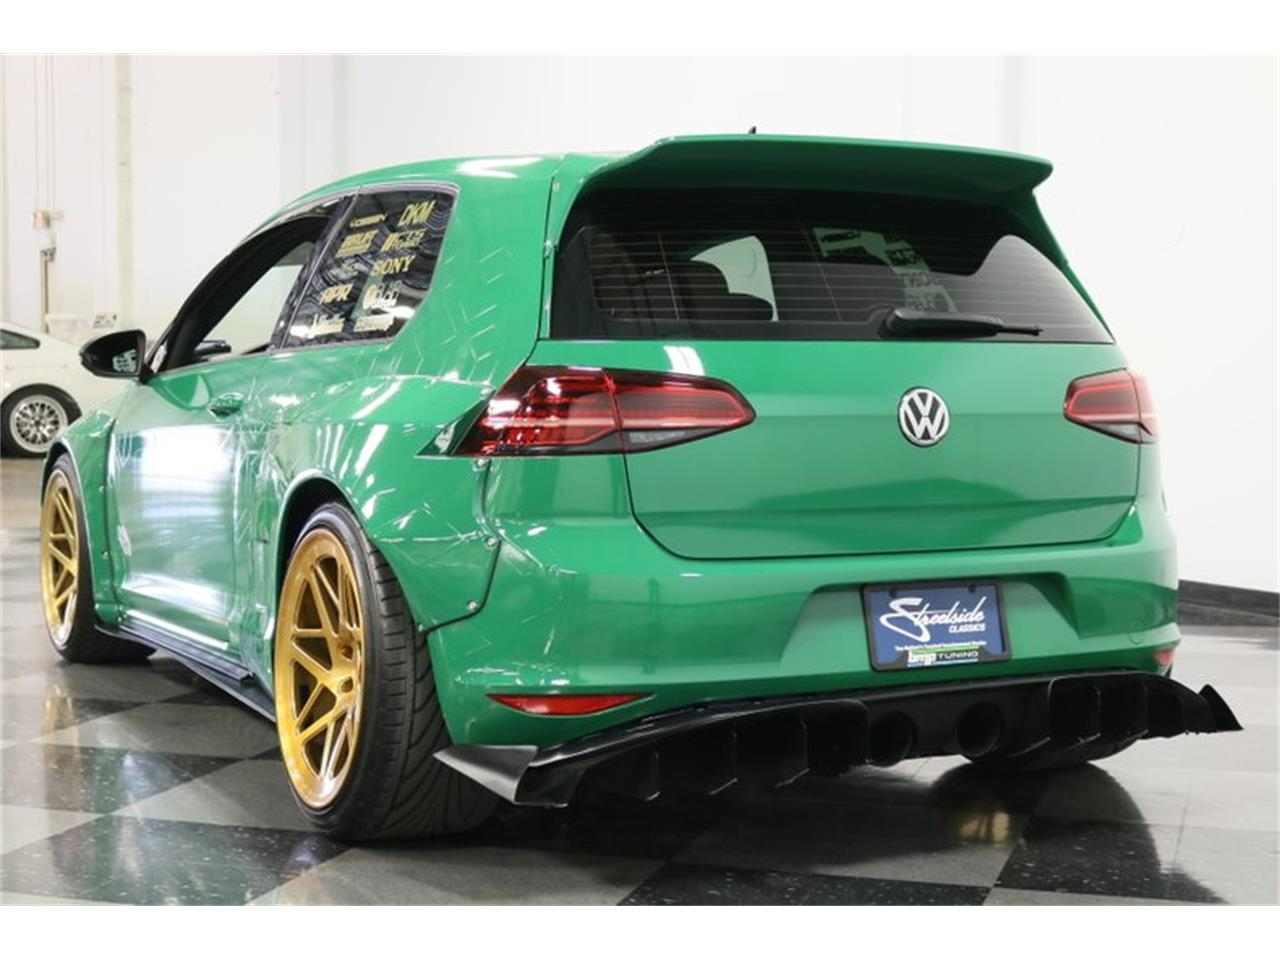 2015 Volkswagen GTI (CC-1207040) for sale in Ft Worth, Texas